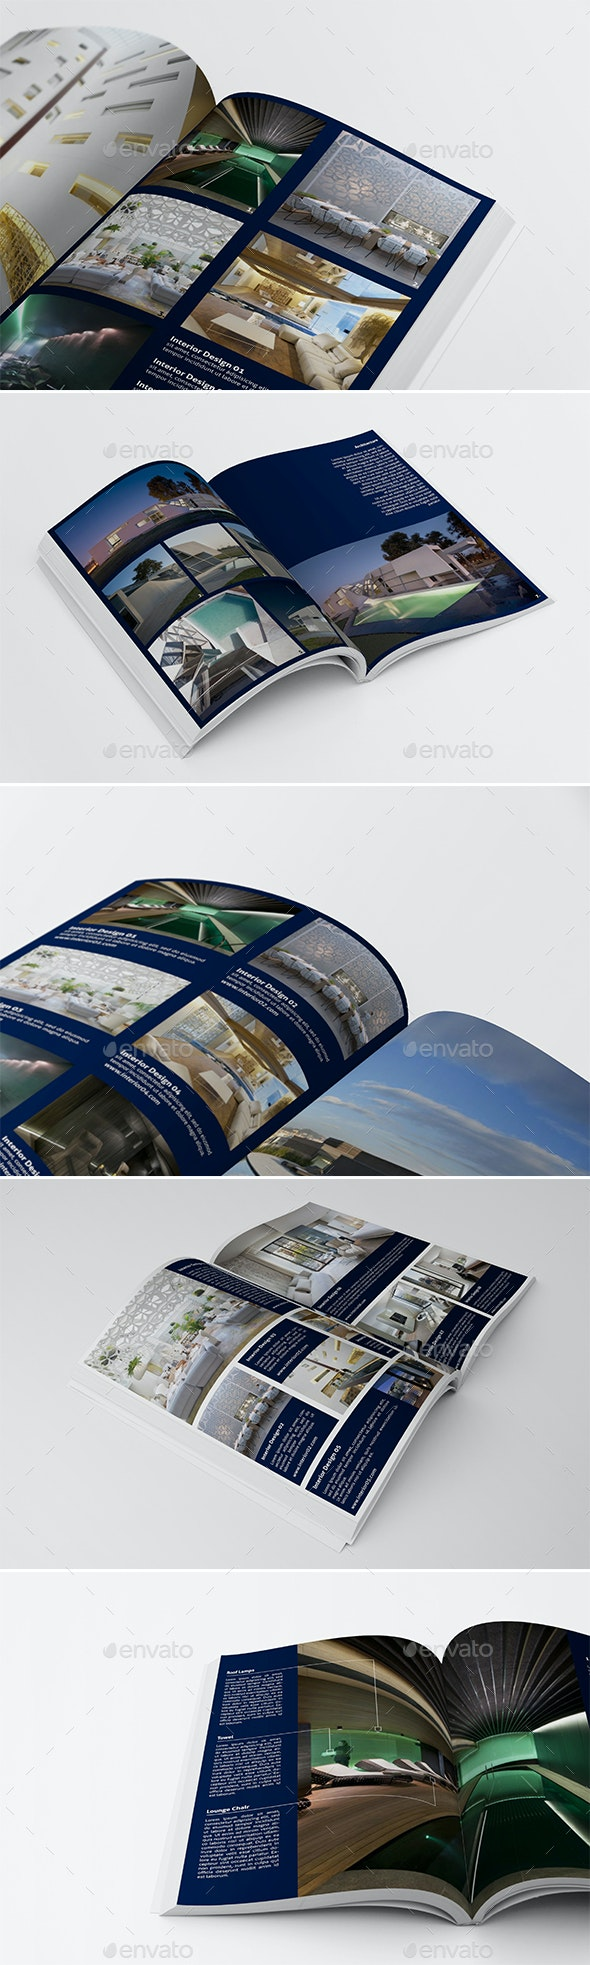 5 Different Product Showcase Layout V.3 - Corporate Brochures